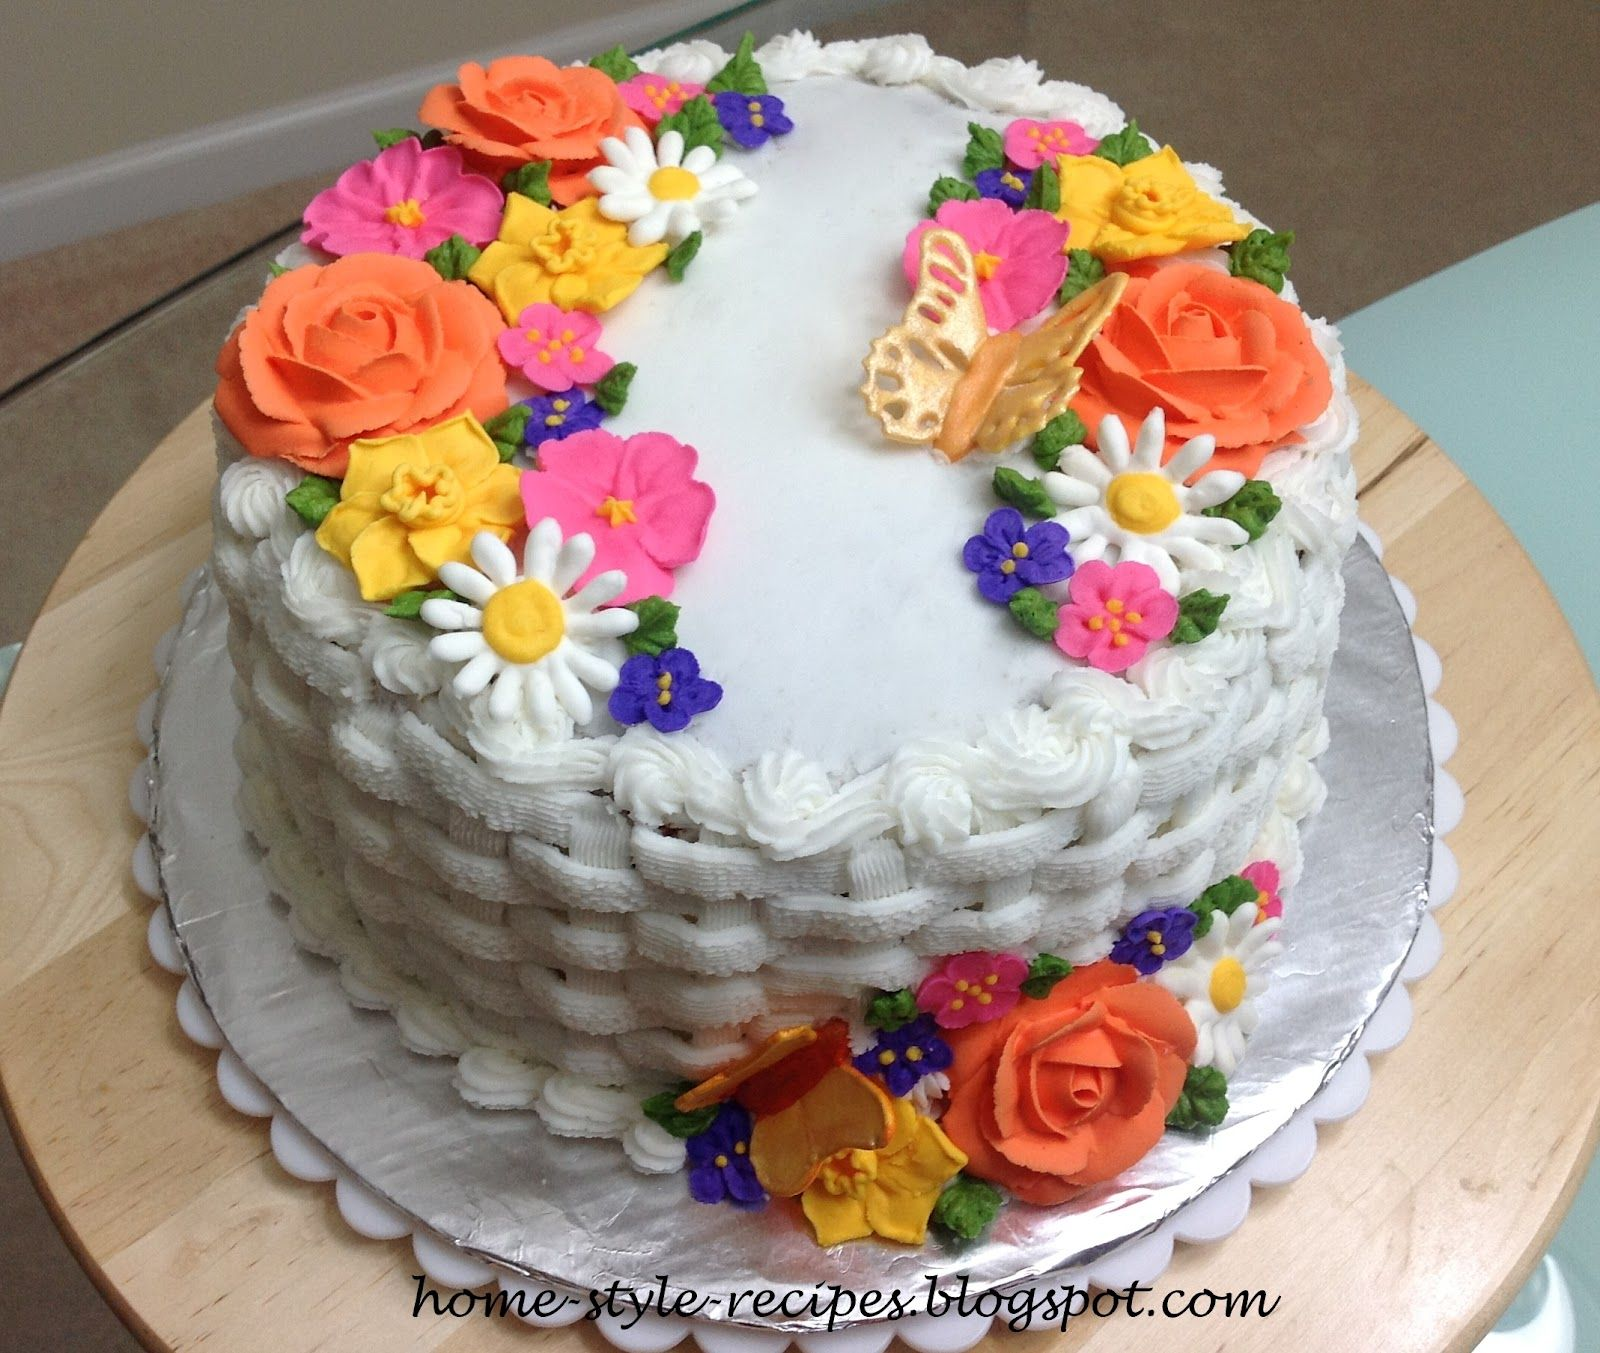 Wilton Flowers And Cake Home Style Recipesspot